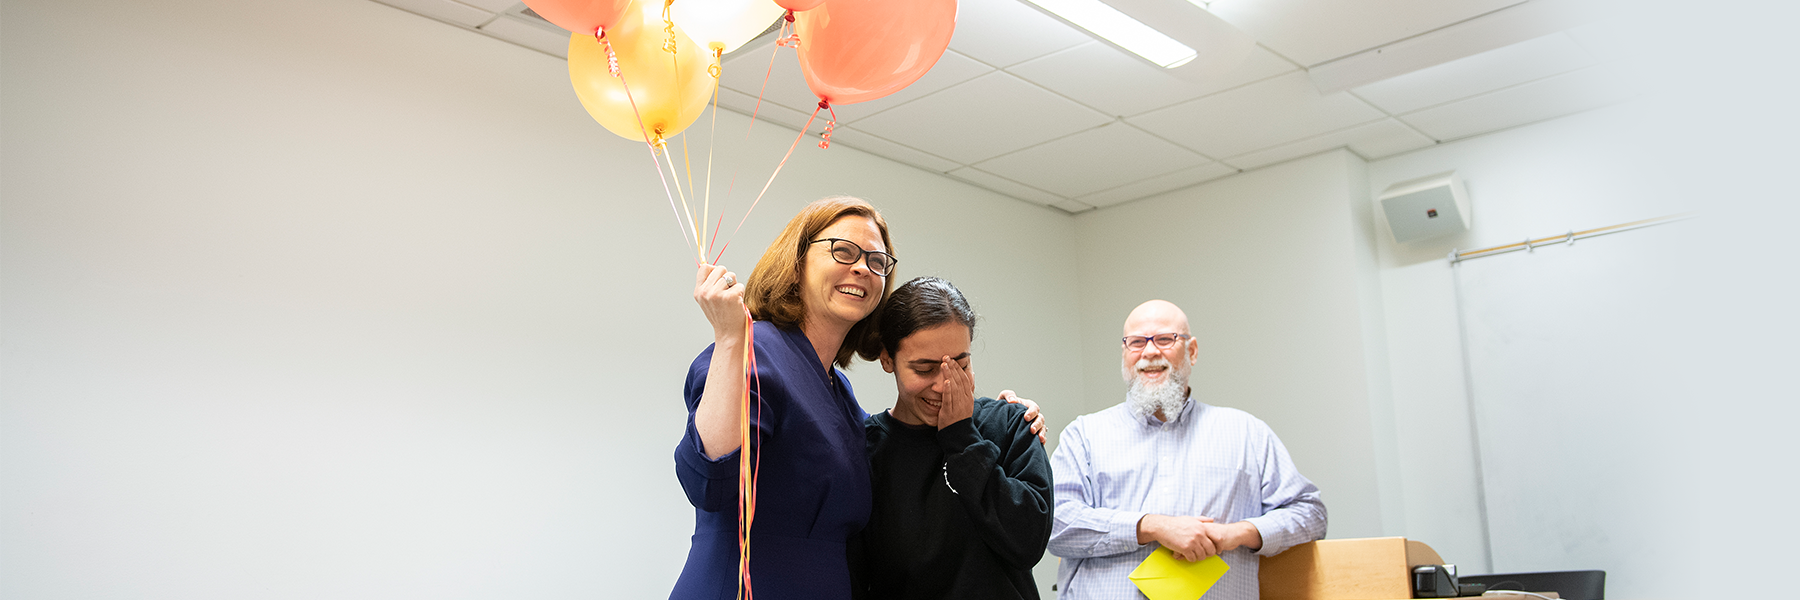 Rana receives Truman Fellowship and balloons from President Tetlow